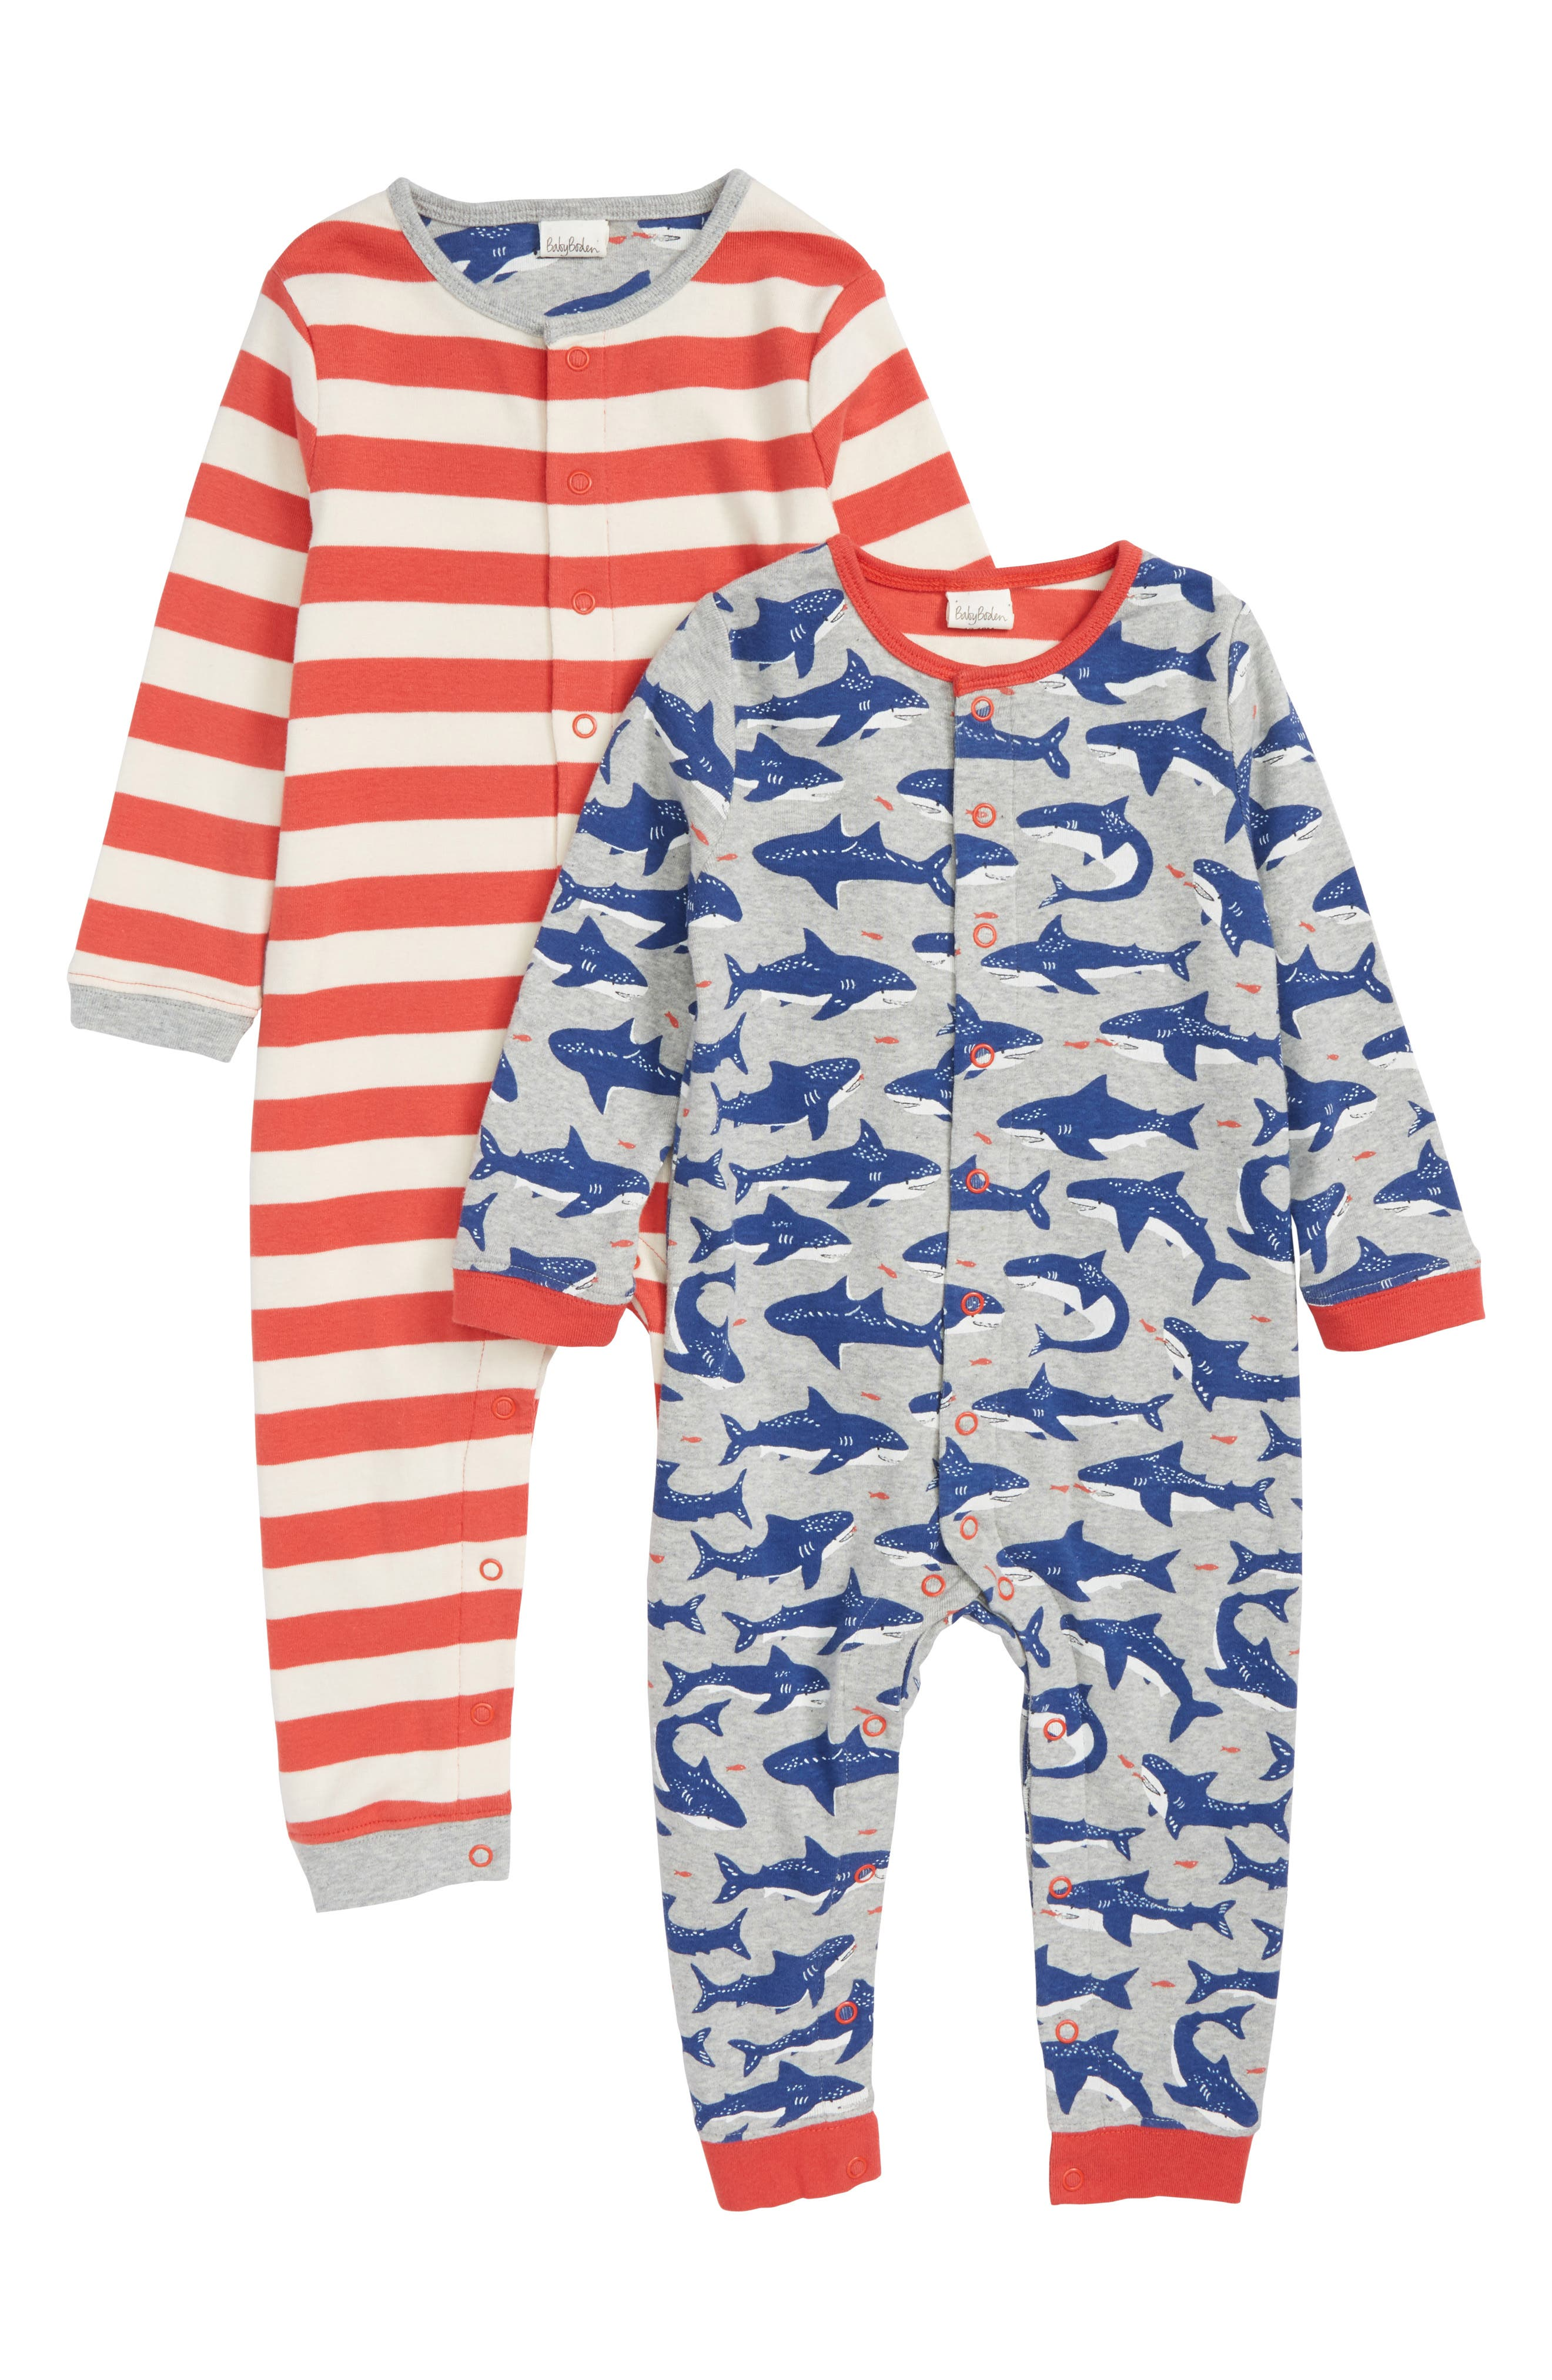 2-Pack Rompers,                         Main,                         color, Grey Marl Sharks